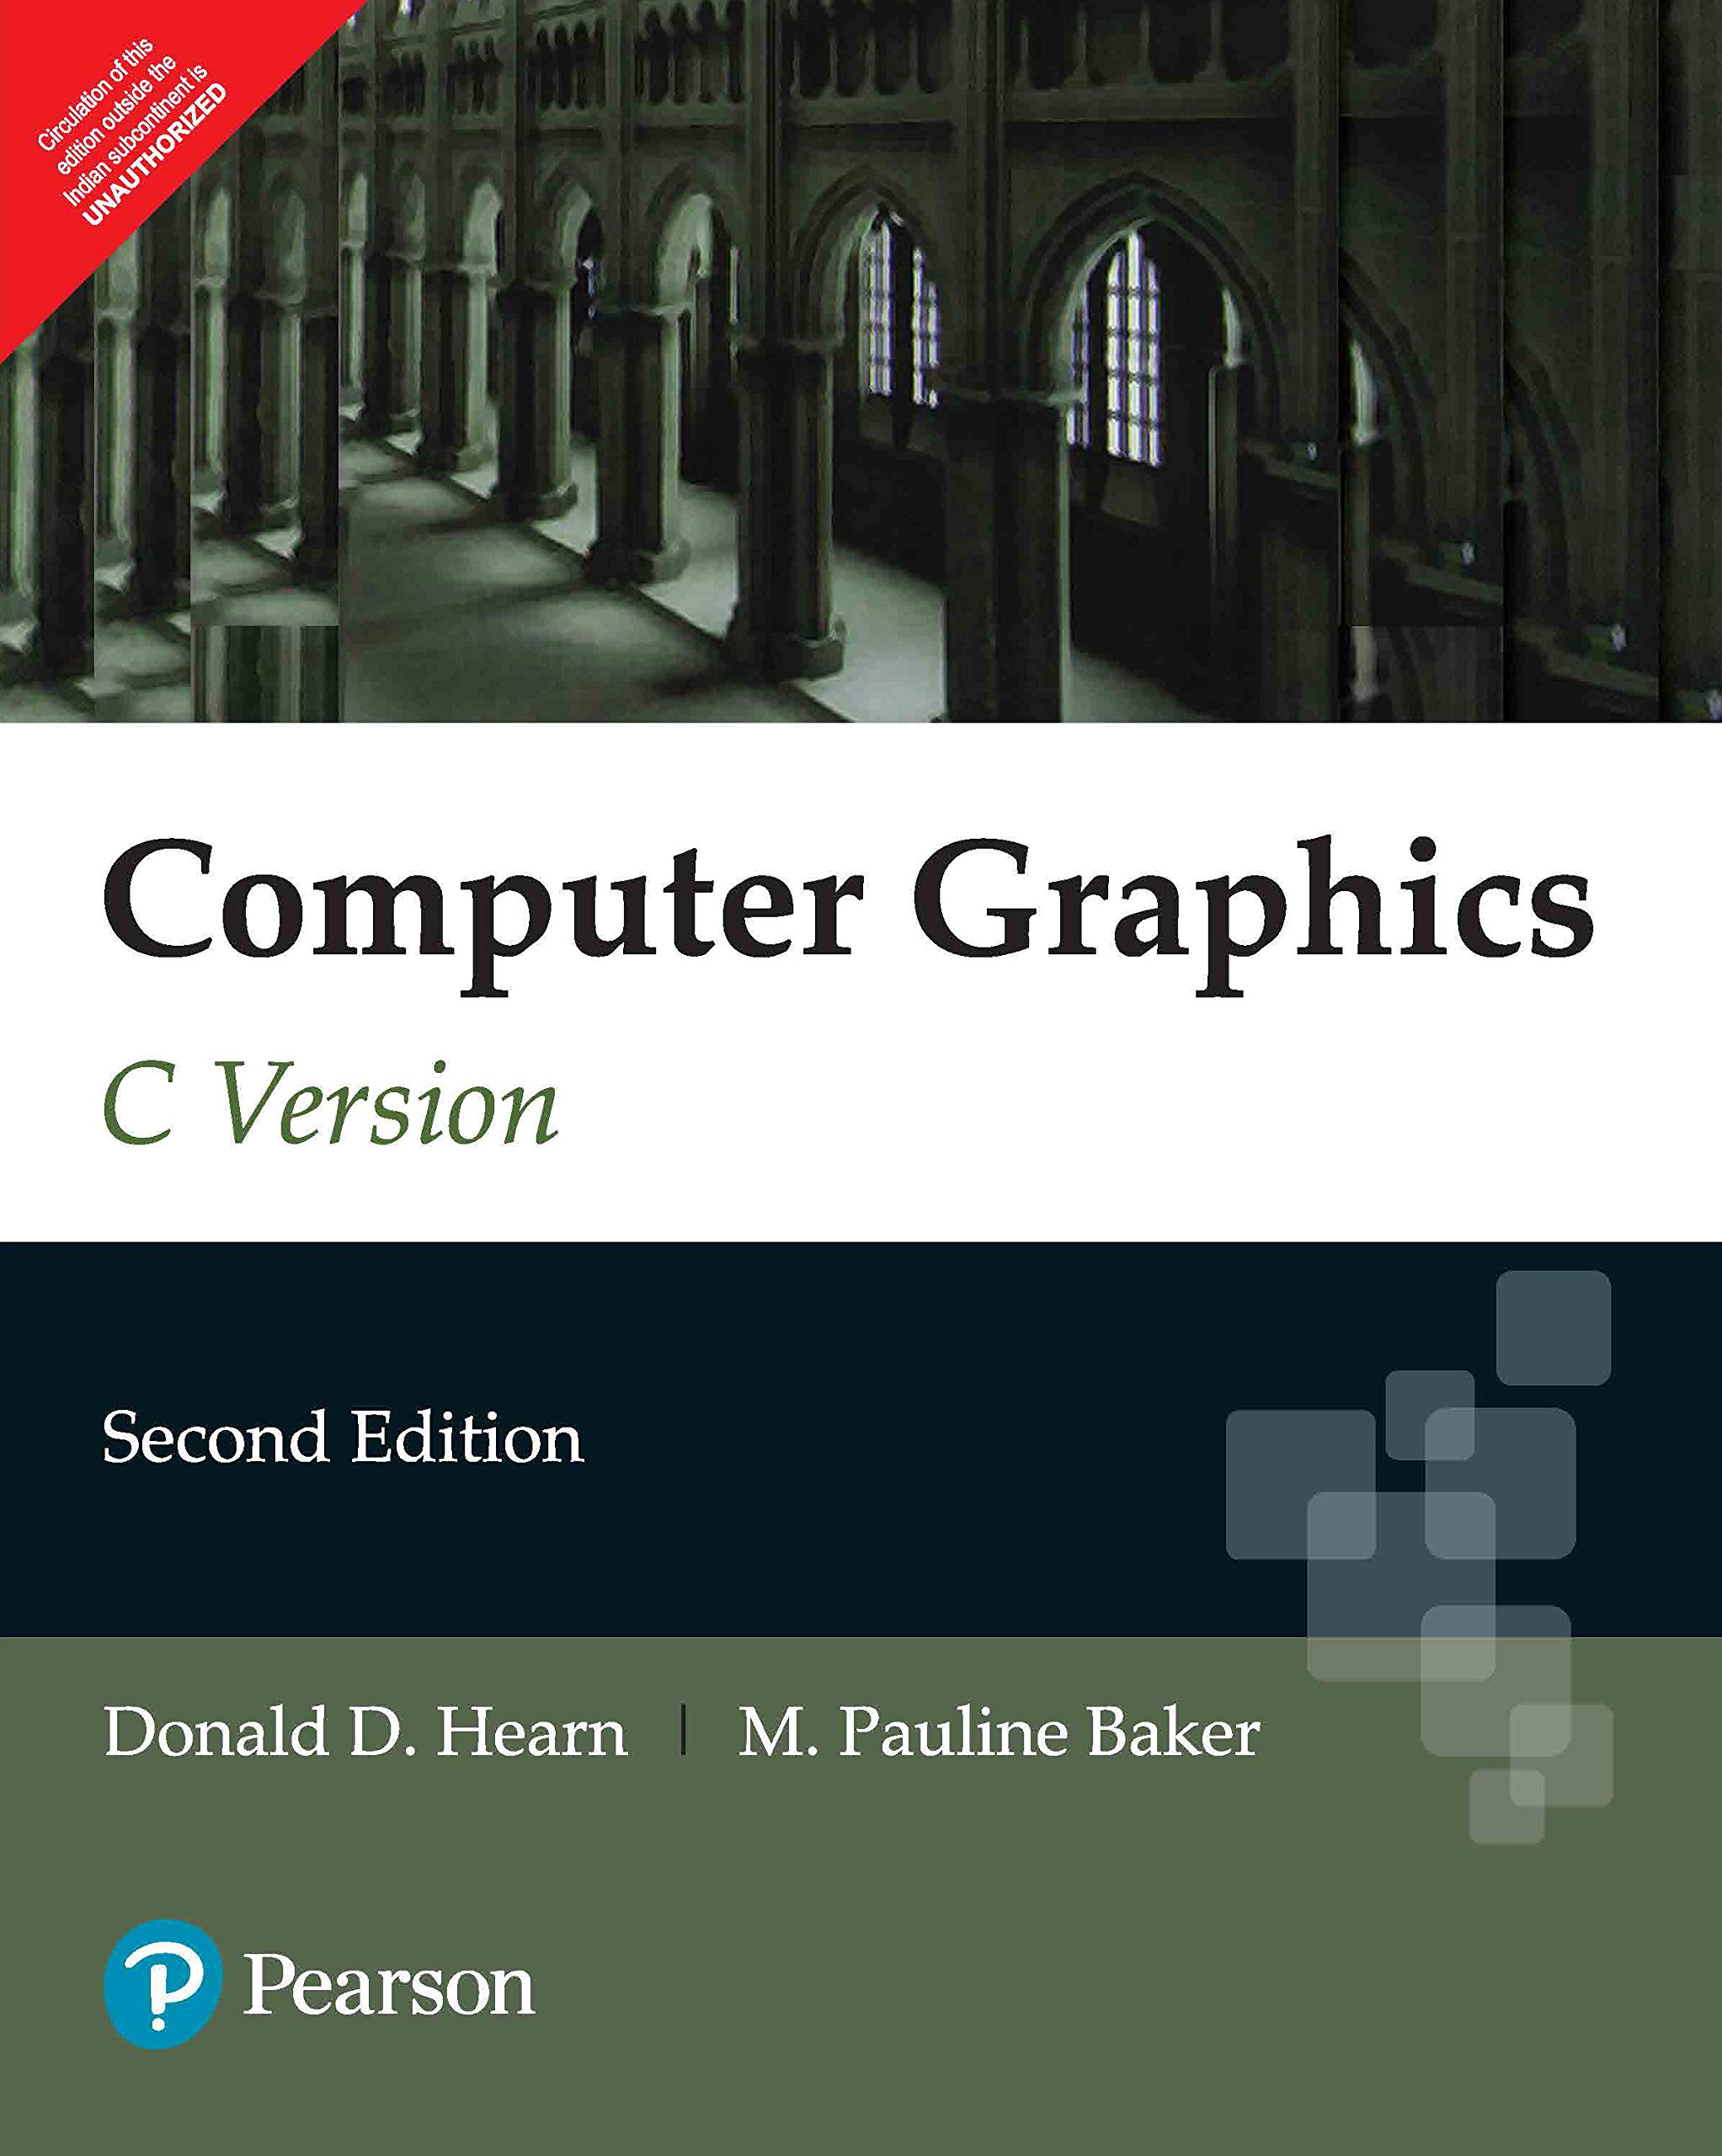 Computer Graphics C Version | Second Edition | By Pearson